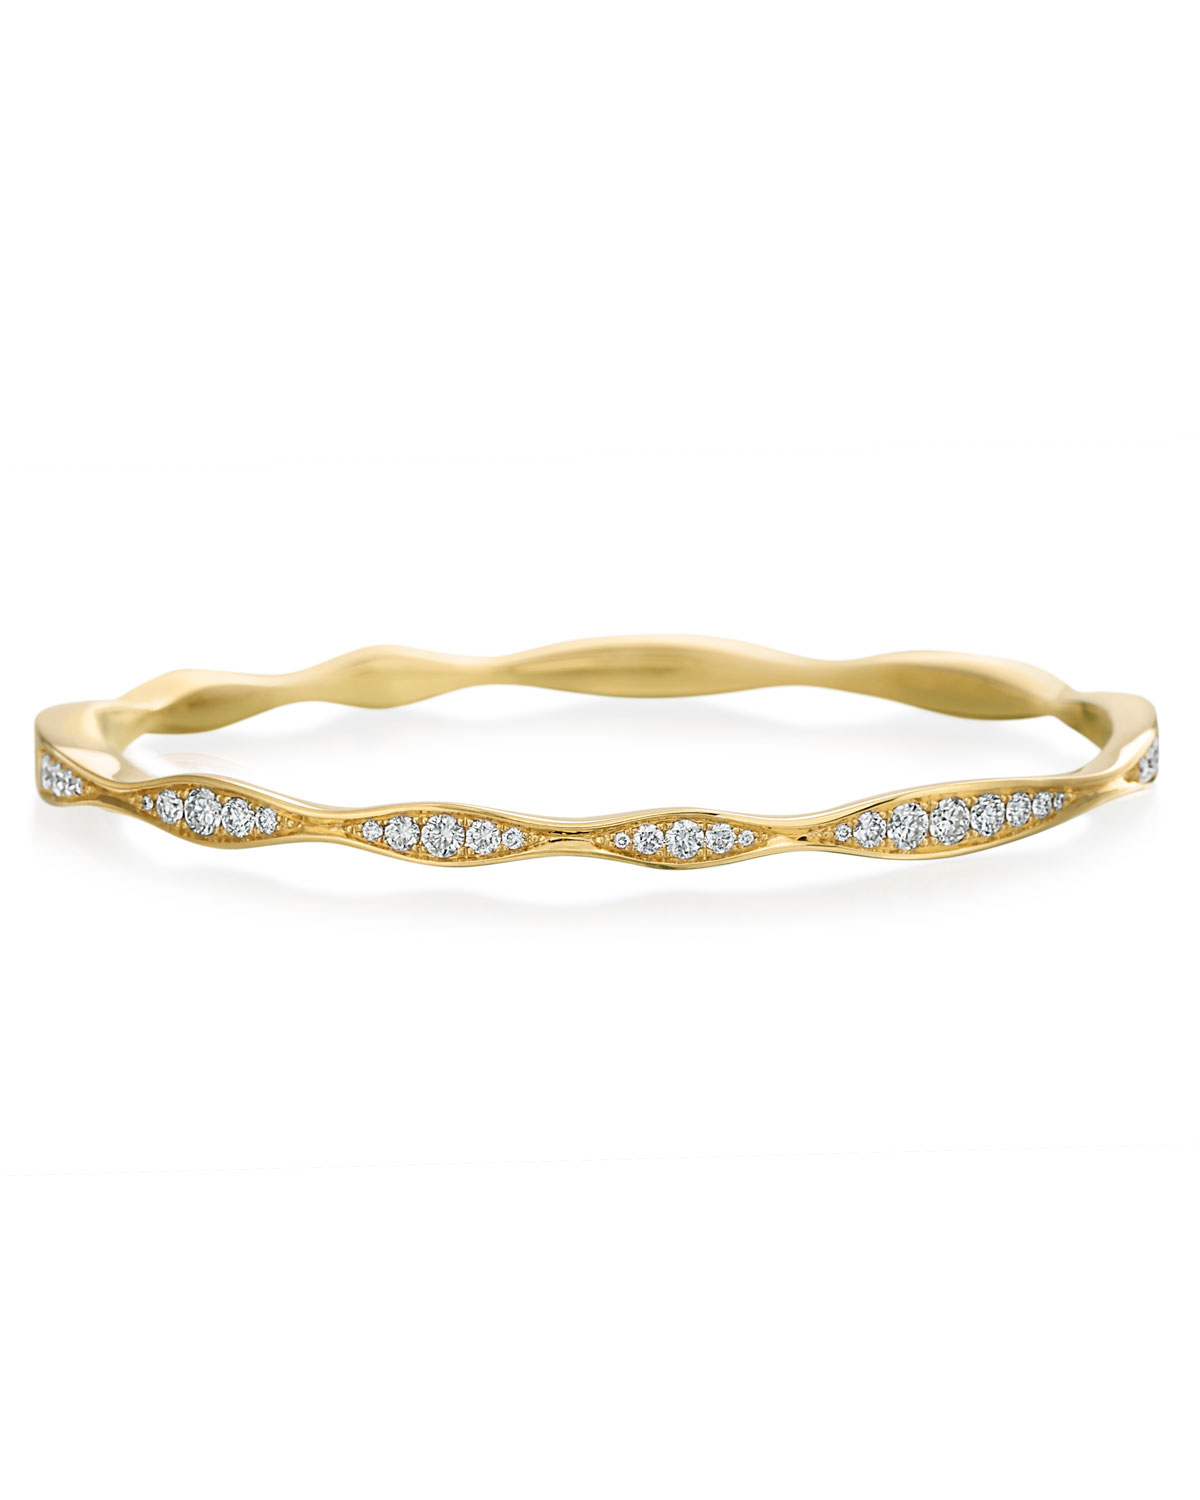 MARIA CANALE 18K Gold Half Diamond Wave Bangle